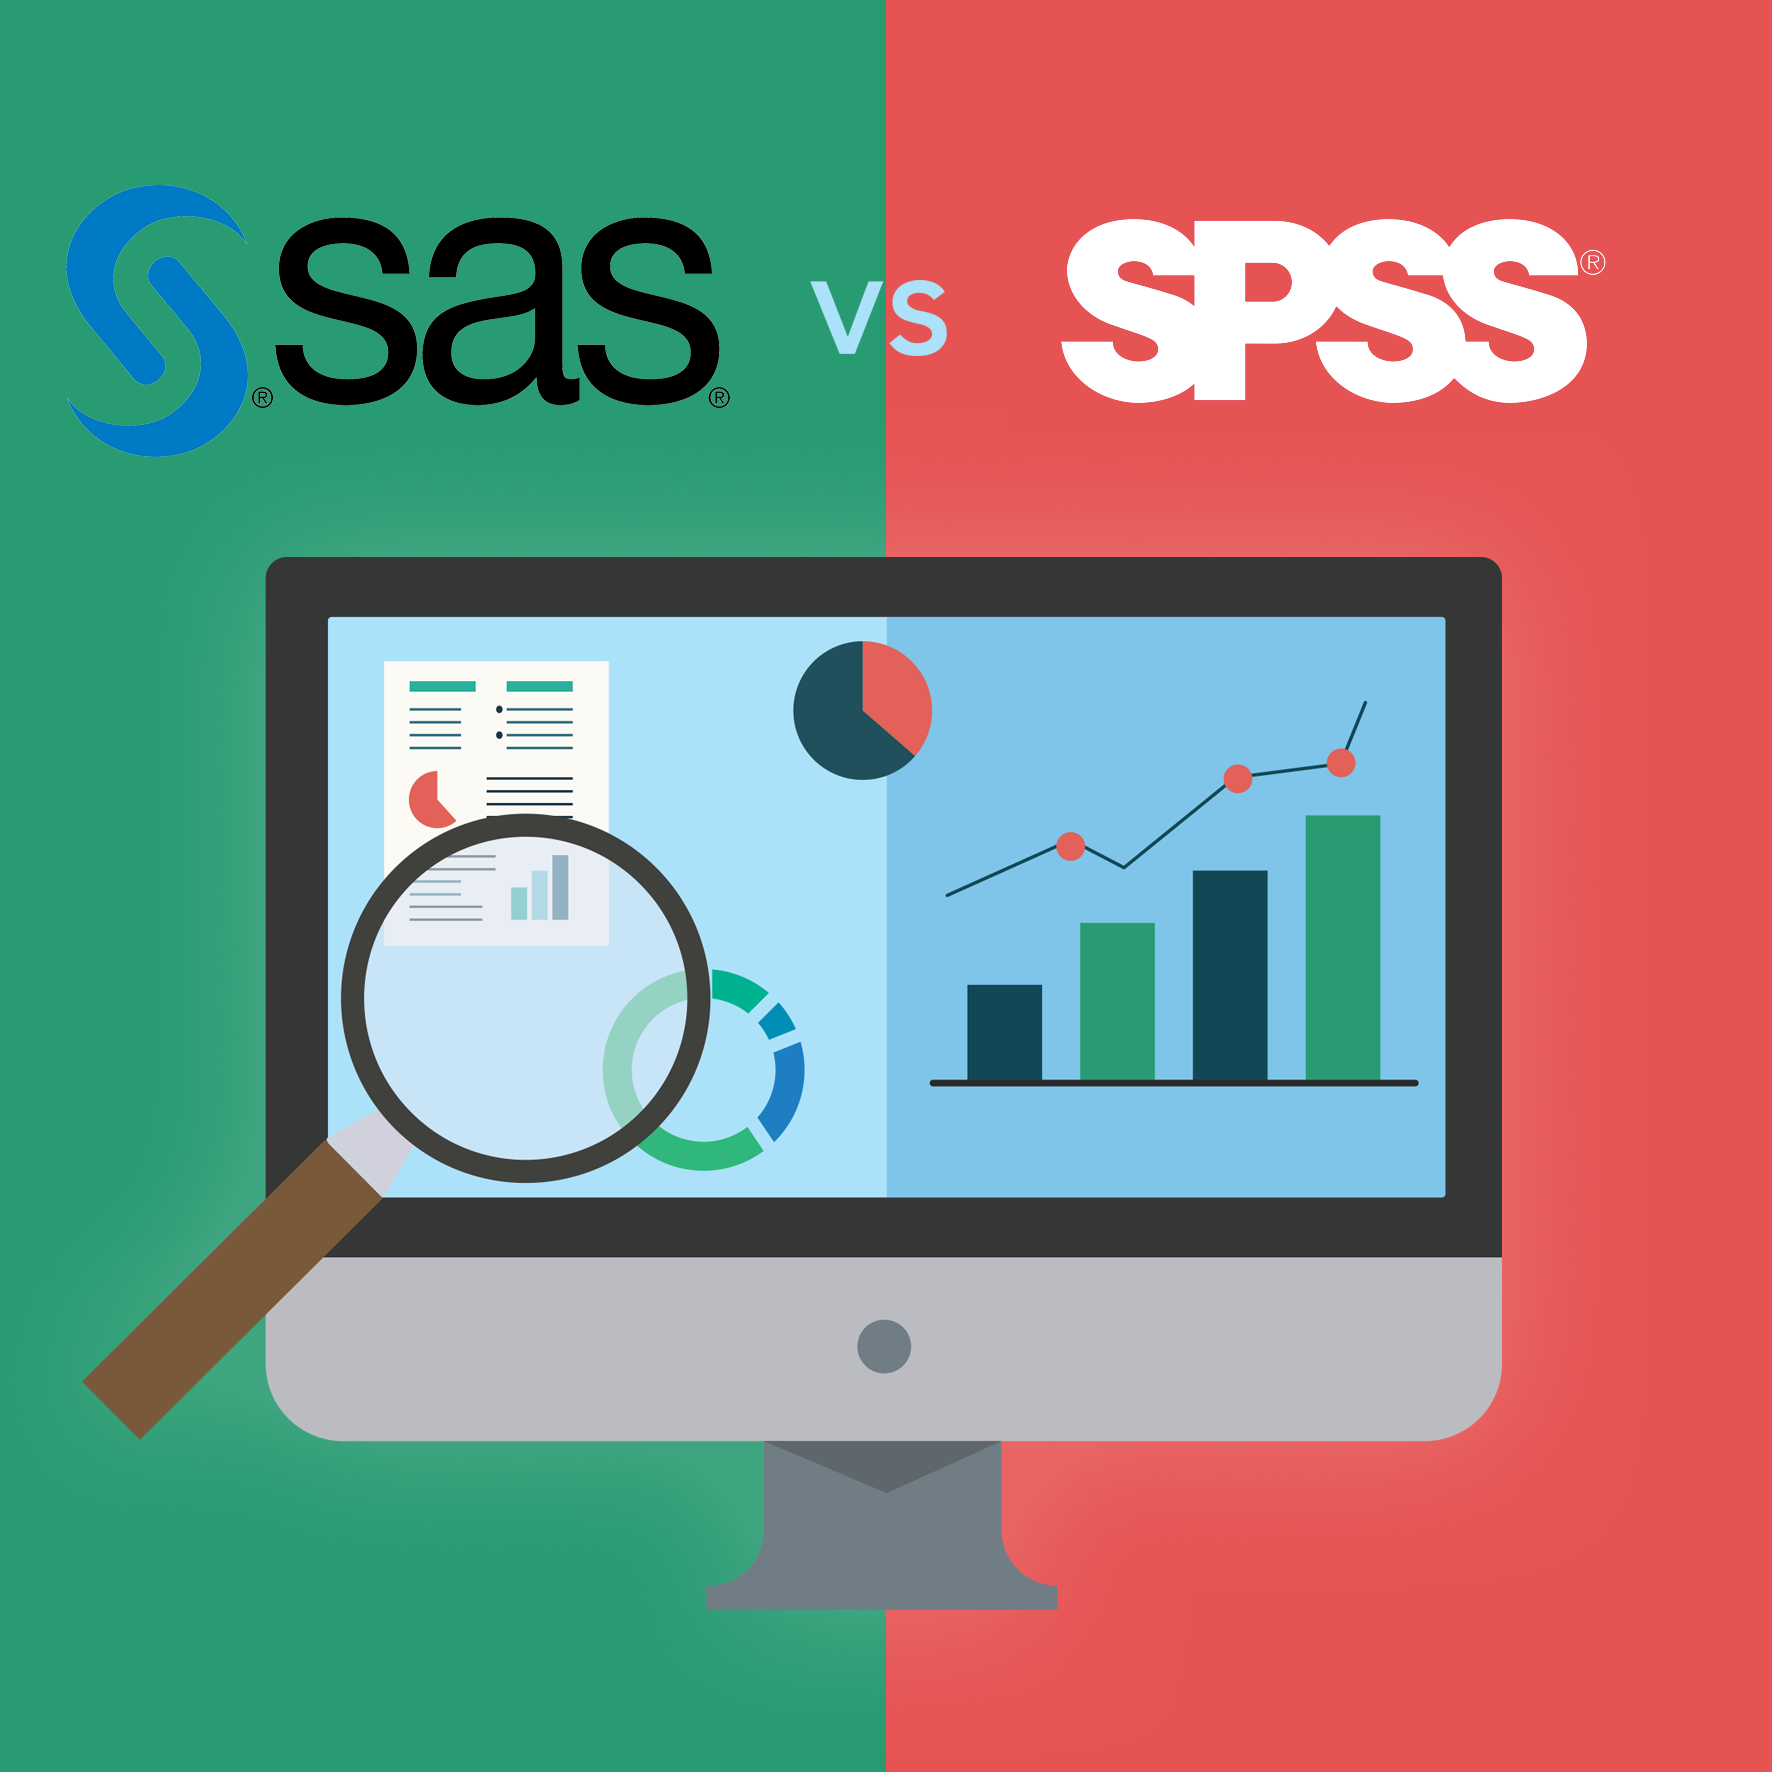 sas vs spss, sas spss, sas and spss, spss to sas